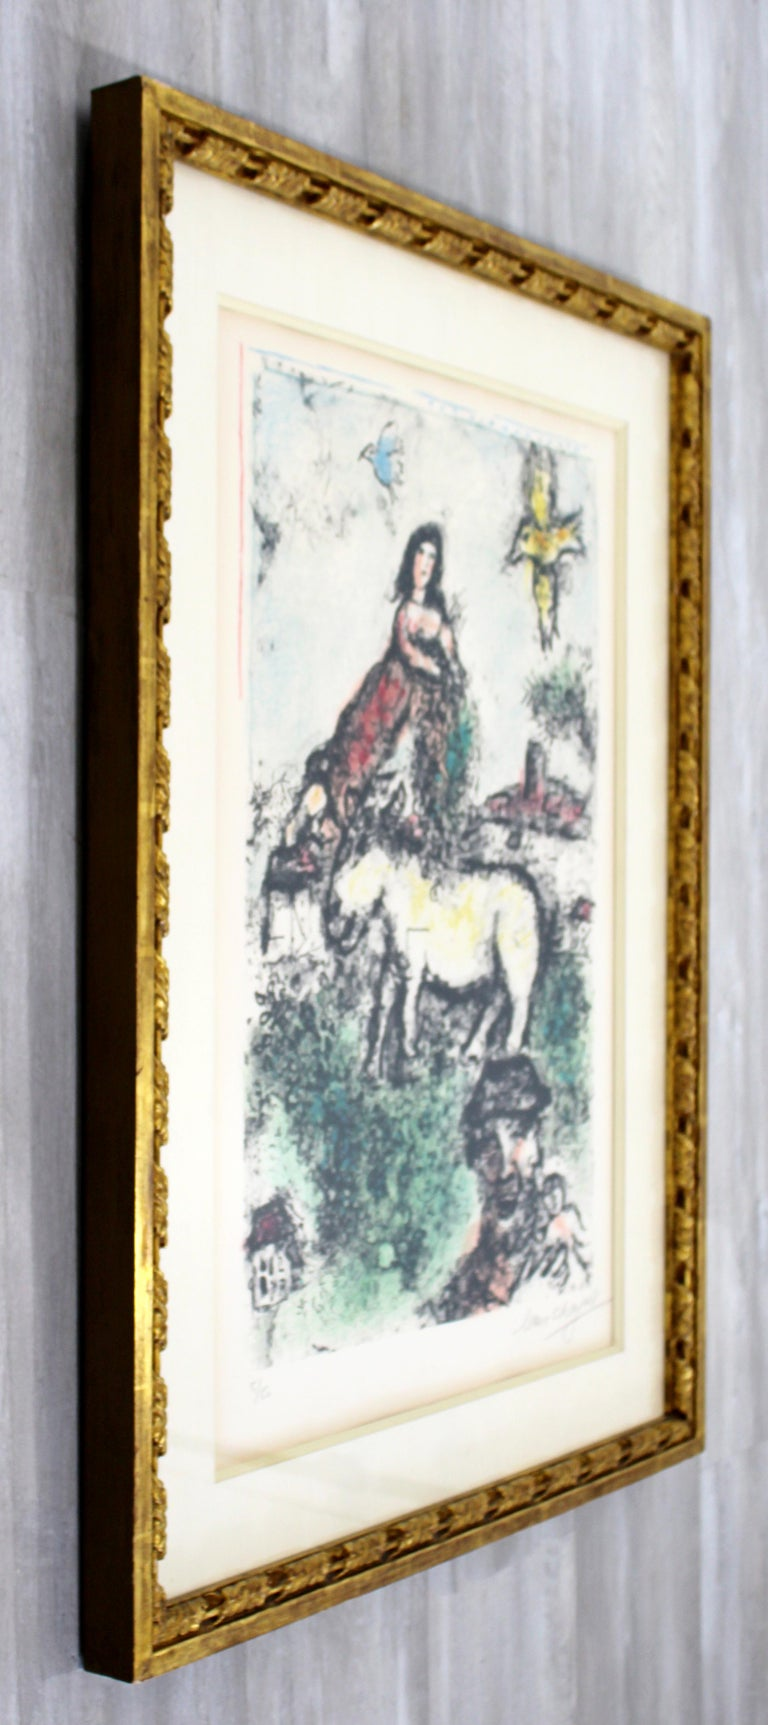 Paper Mid-Century Modern Framed Marc Chagall Signed Lithograph Un jardin perdu 5/50 For Sale